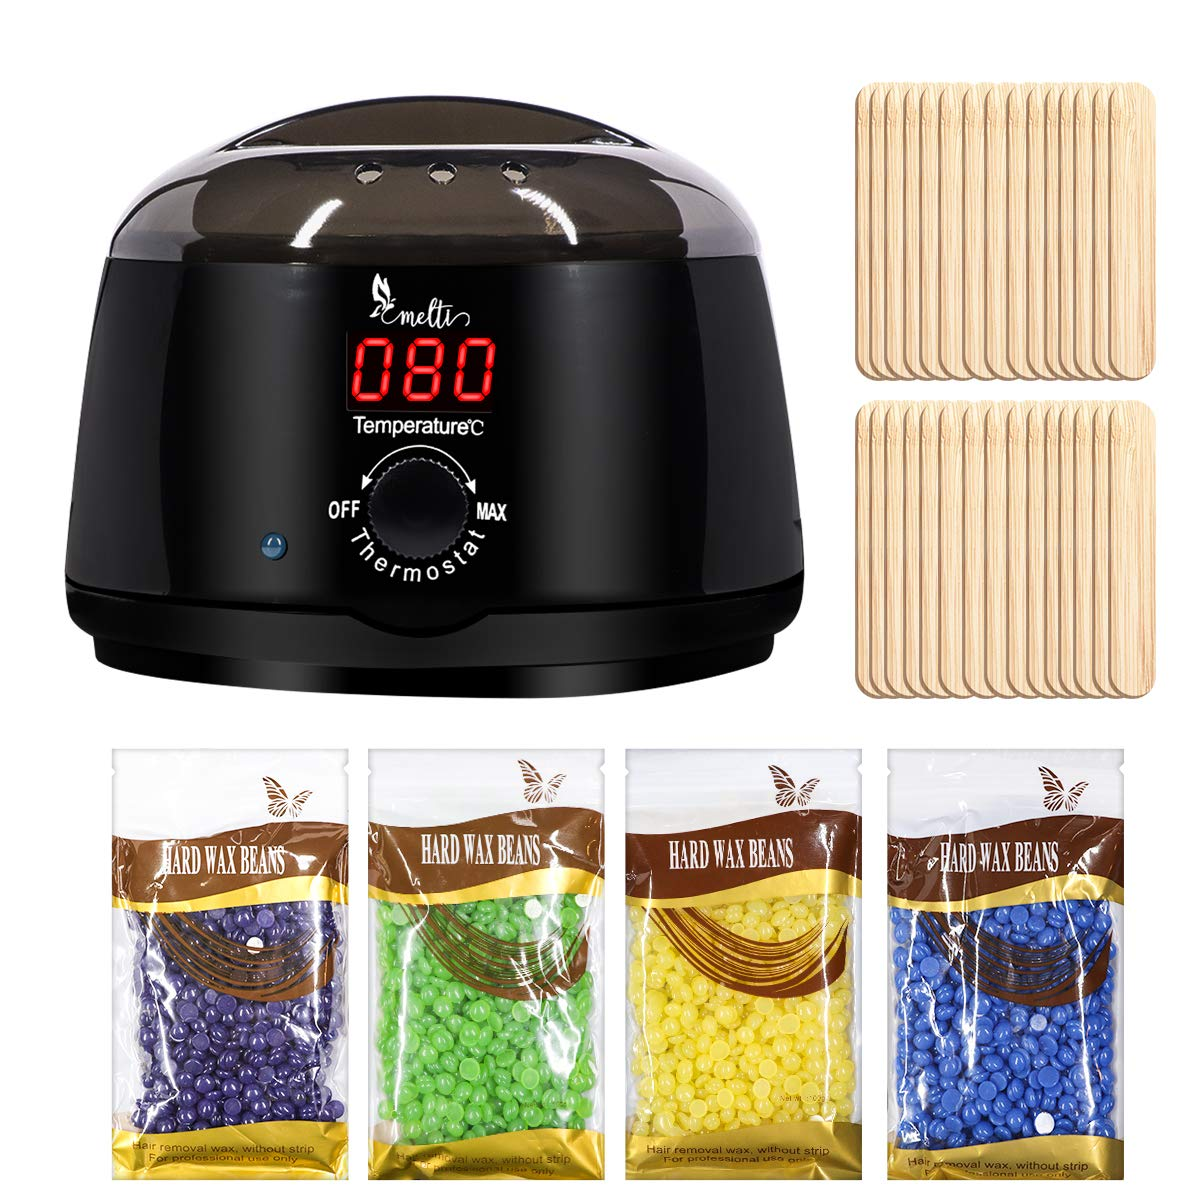 Easy Melt Hair Removal Waxing Kit with Celsius Digital Temperature Display Electric Hot Wax Warmer monitoring, Hard Wax pearls and Wax Applicator Sticks Ltd.